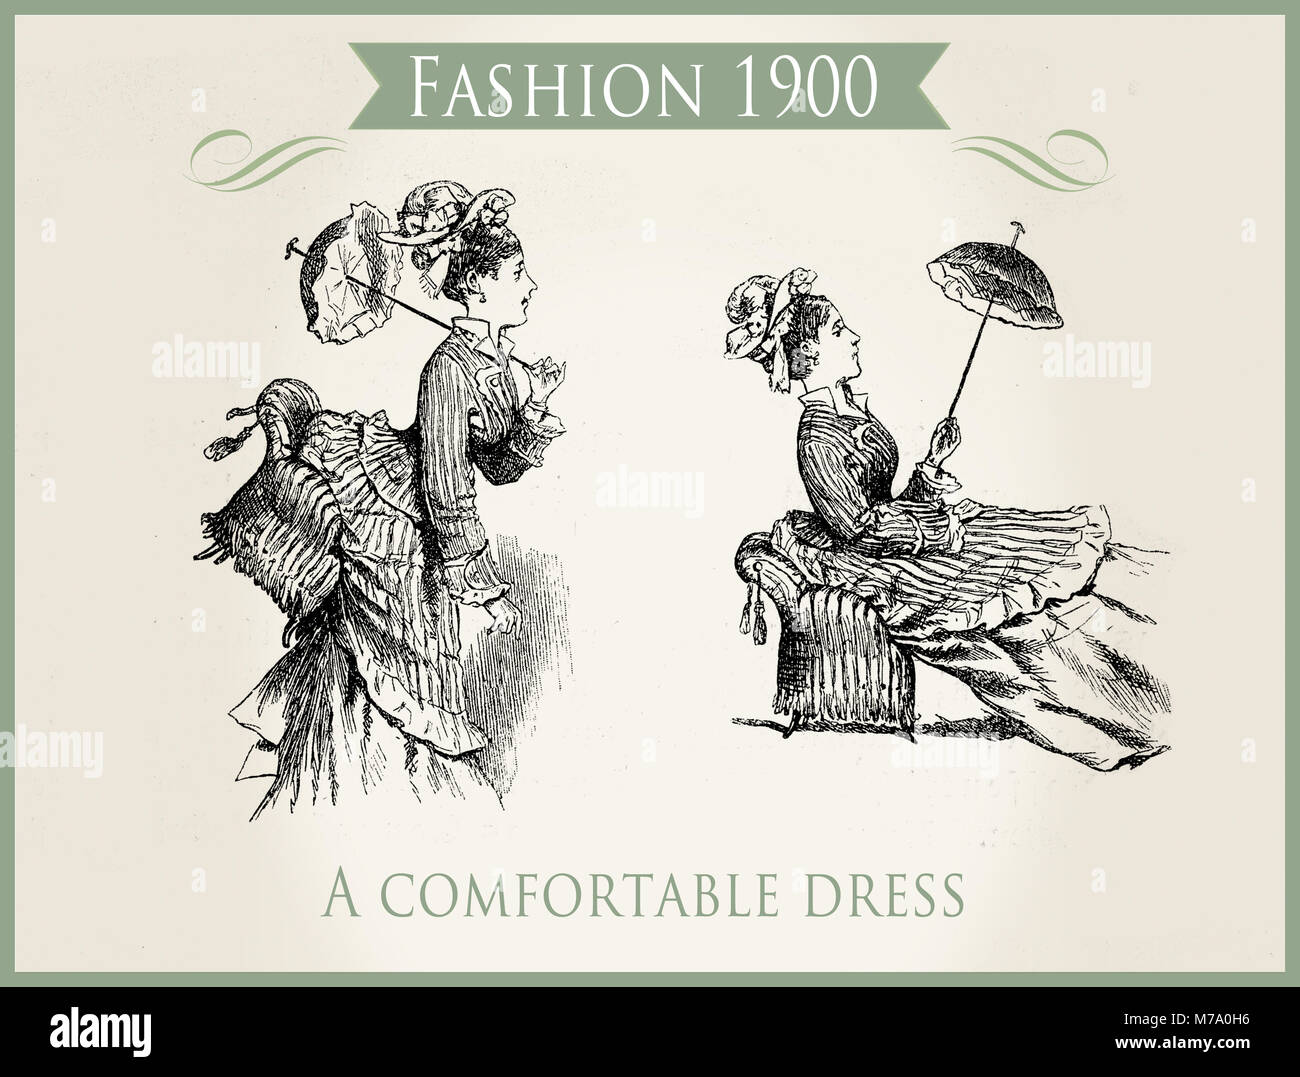 Fashion early 1900: a comfortable dress, caricature and fun - Stock Image